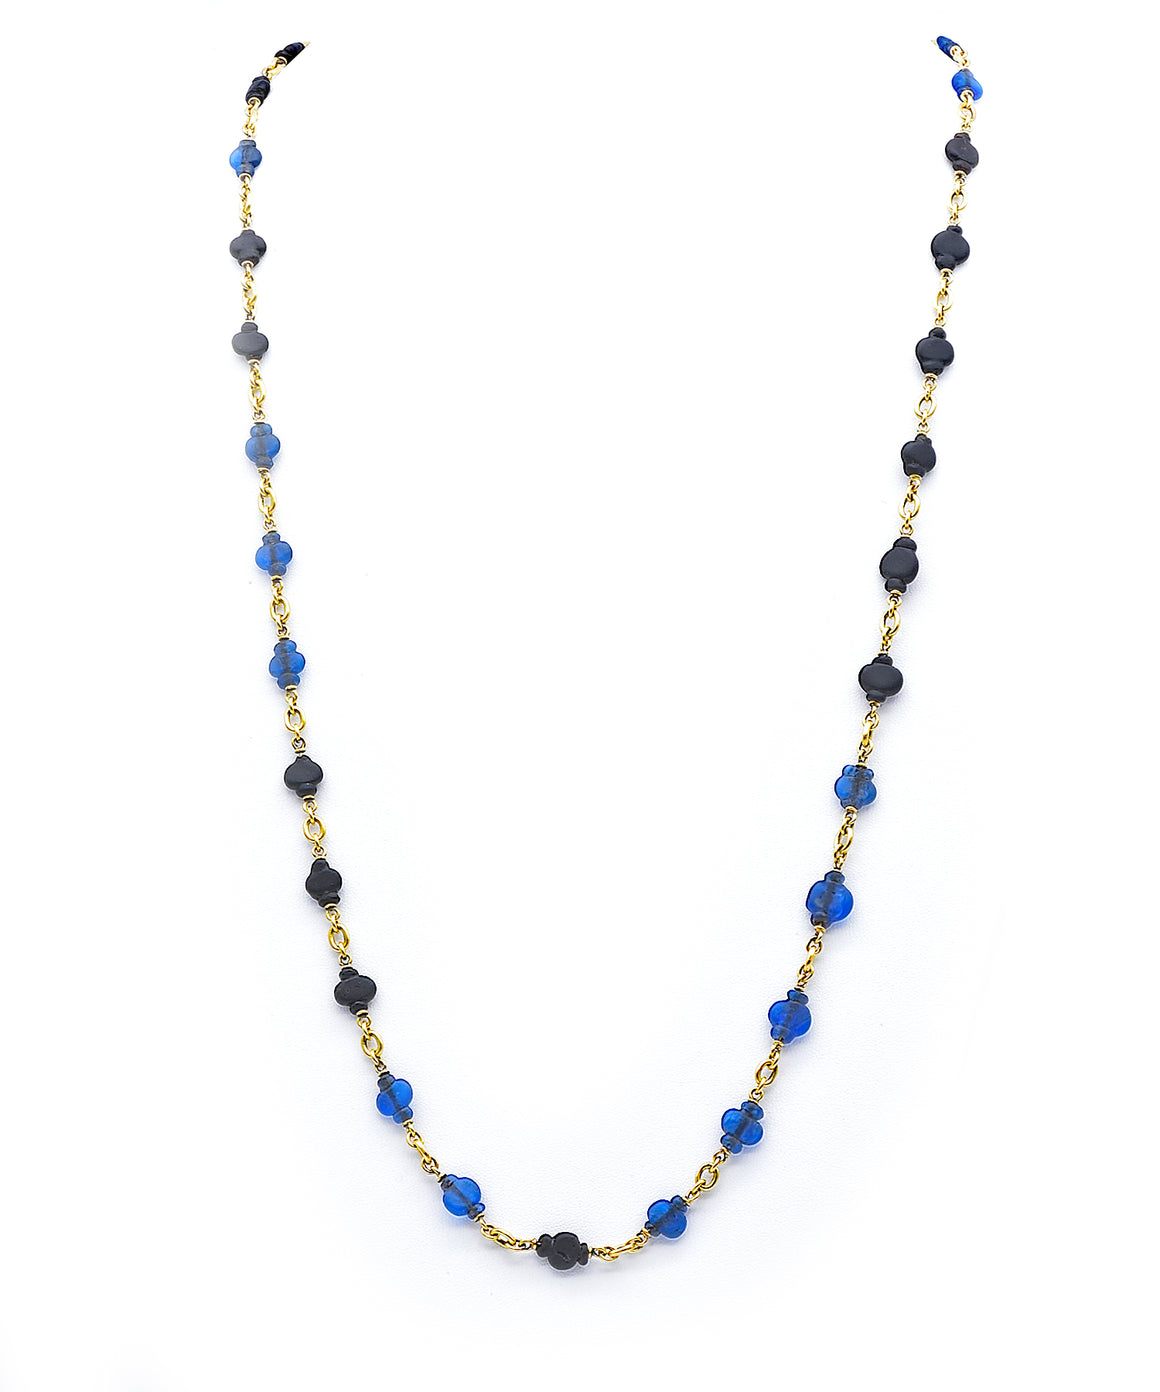 Ancient glass bead necklace - Lesley Ann Jewels